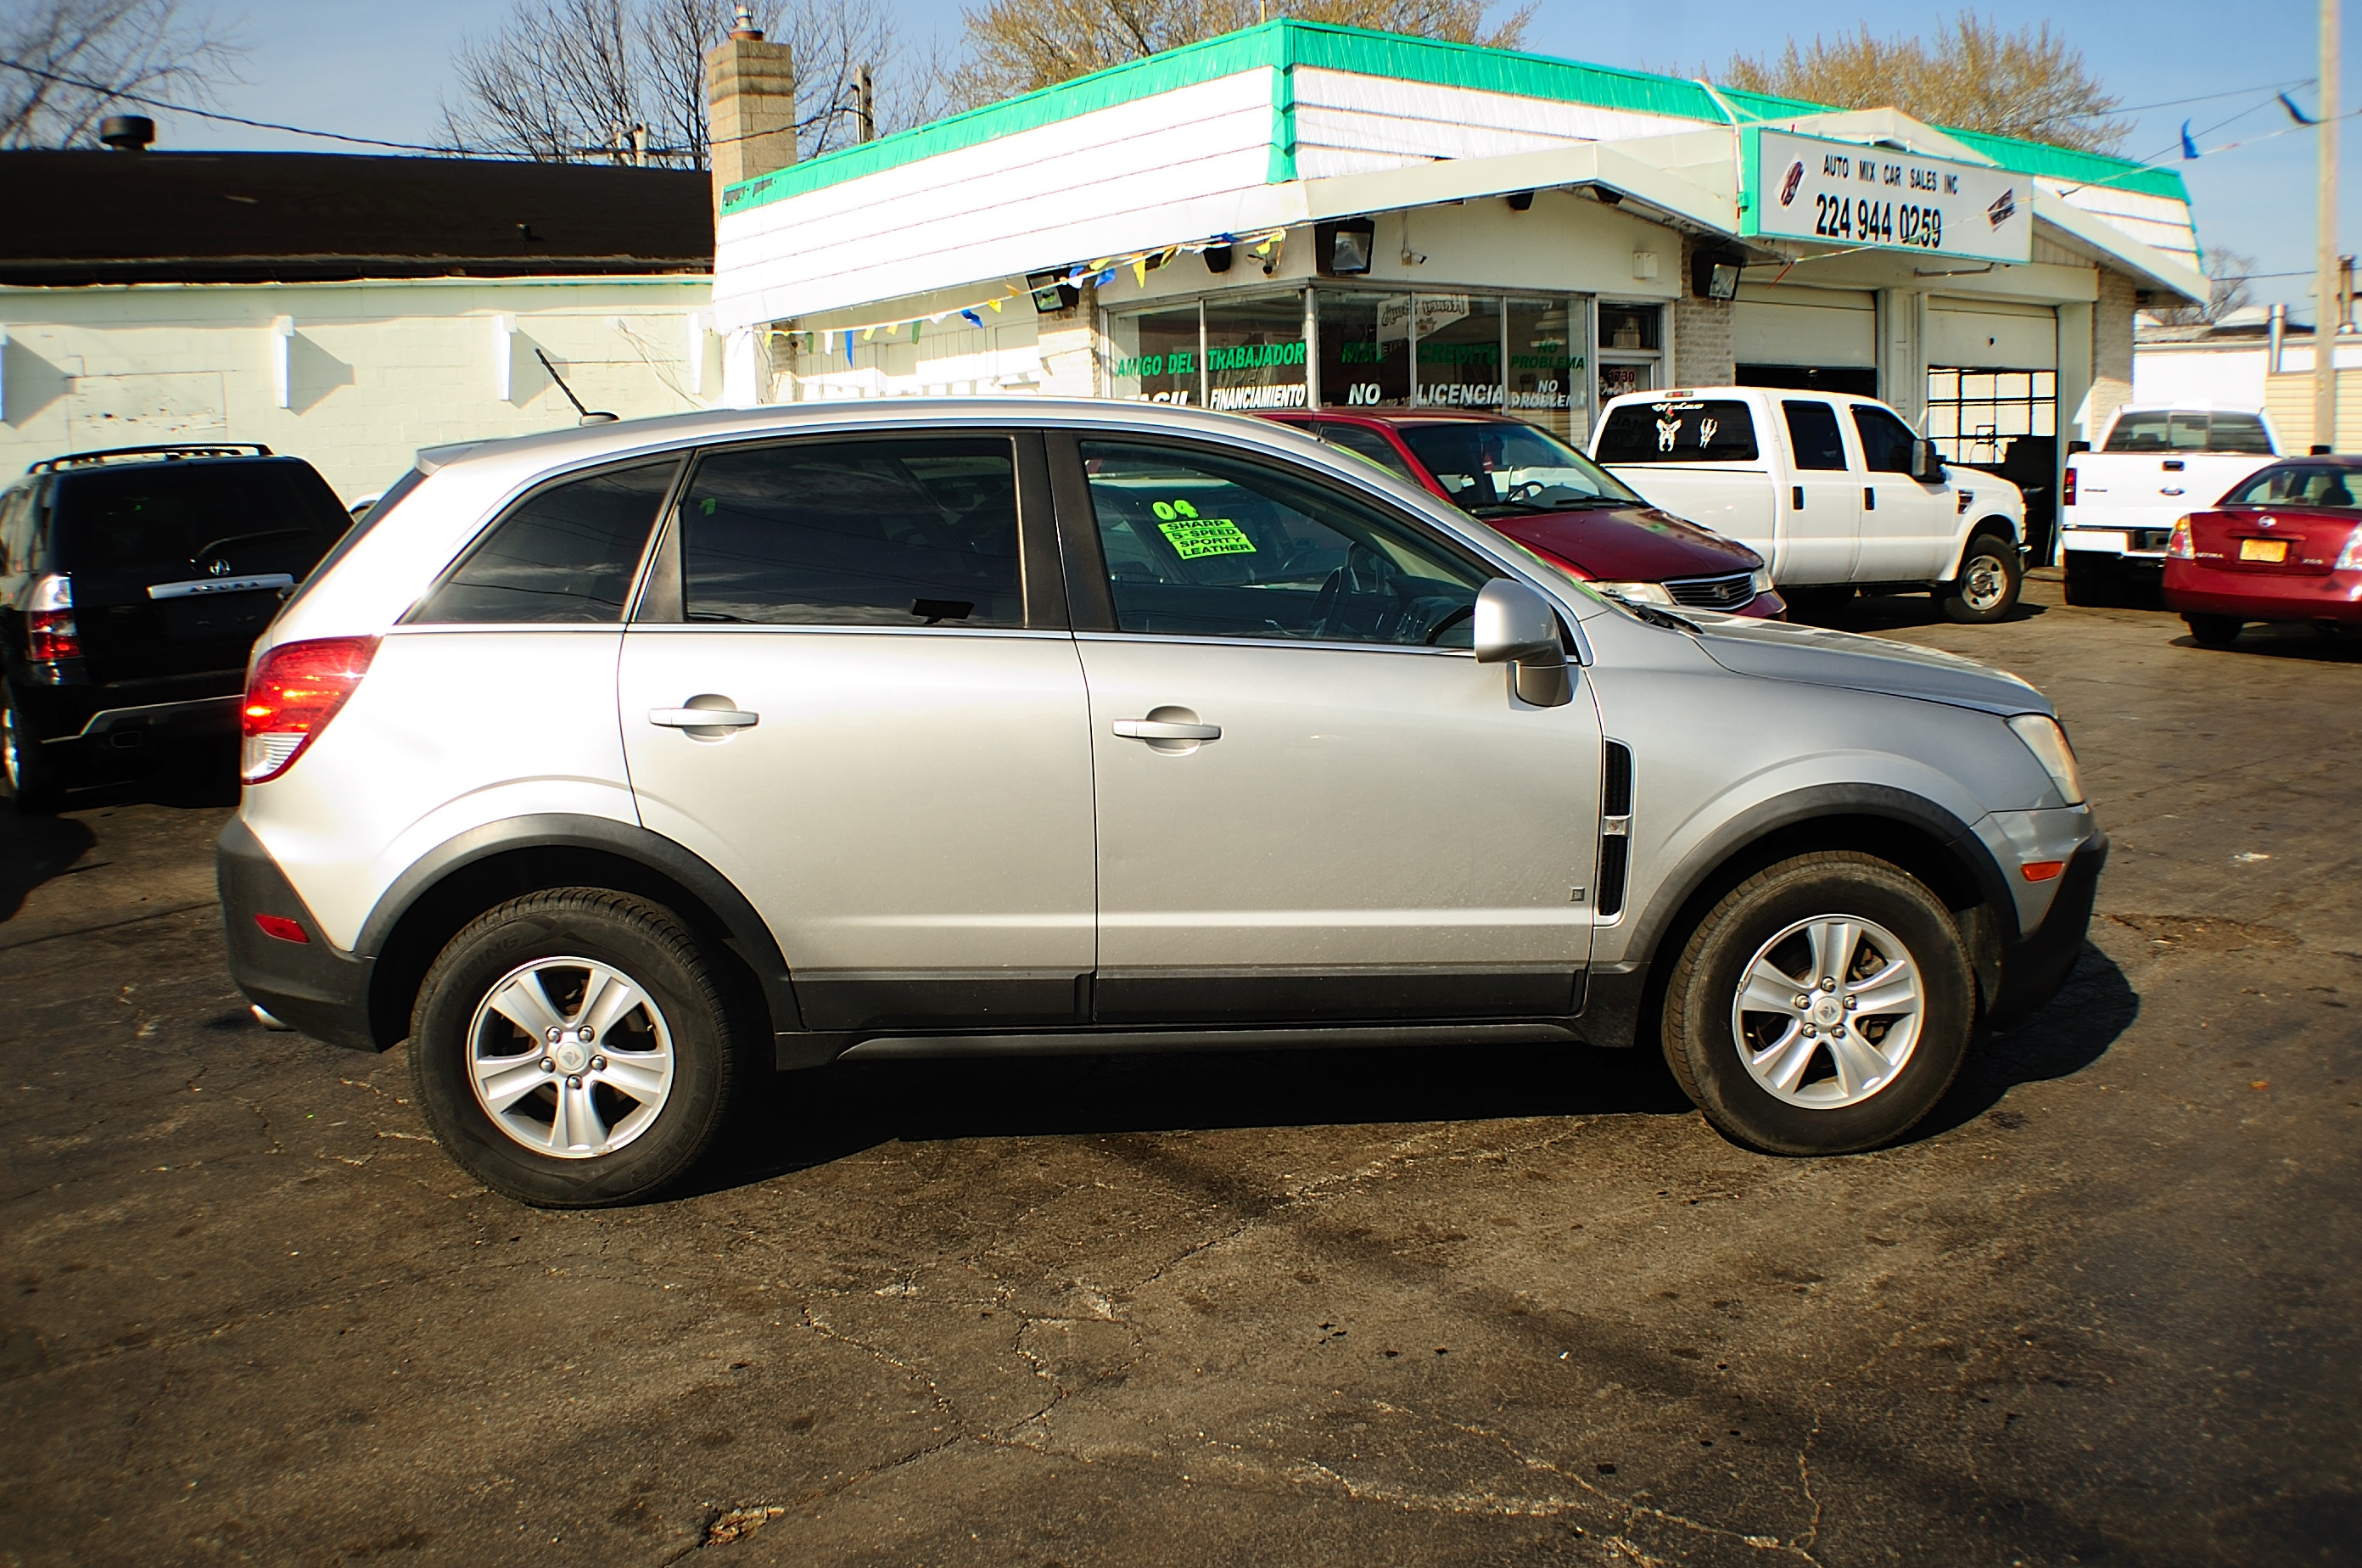 2008 Saturn Vue Xe 4dr Silver Suv Used Car Sale Commercial